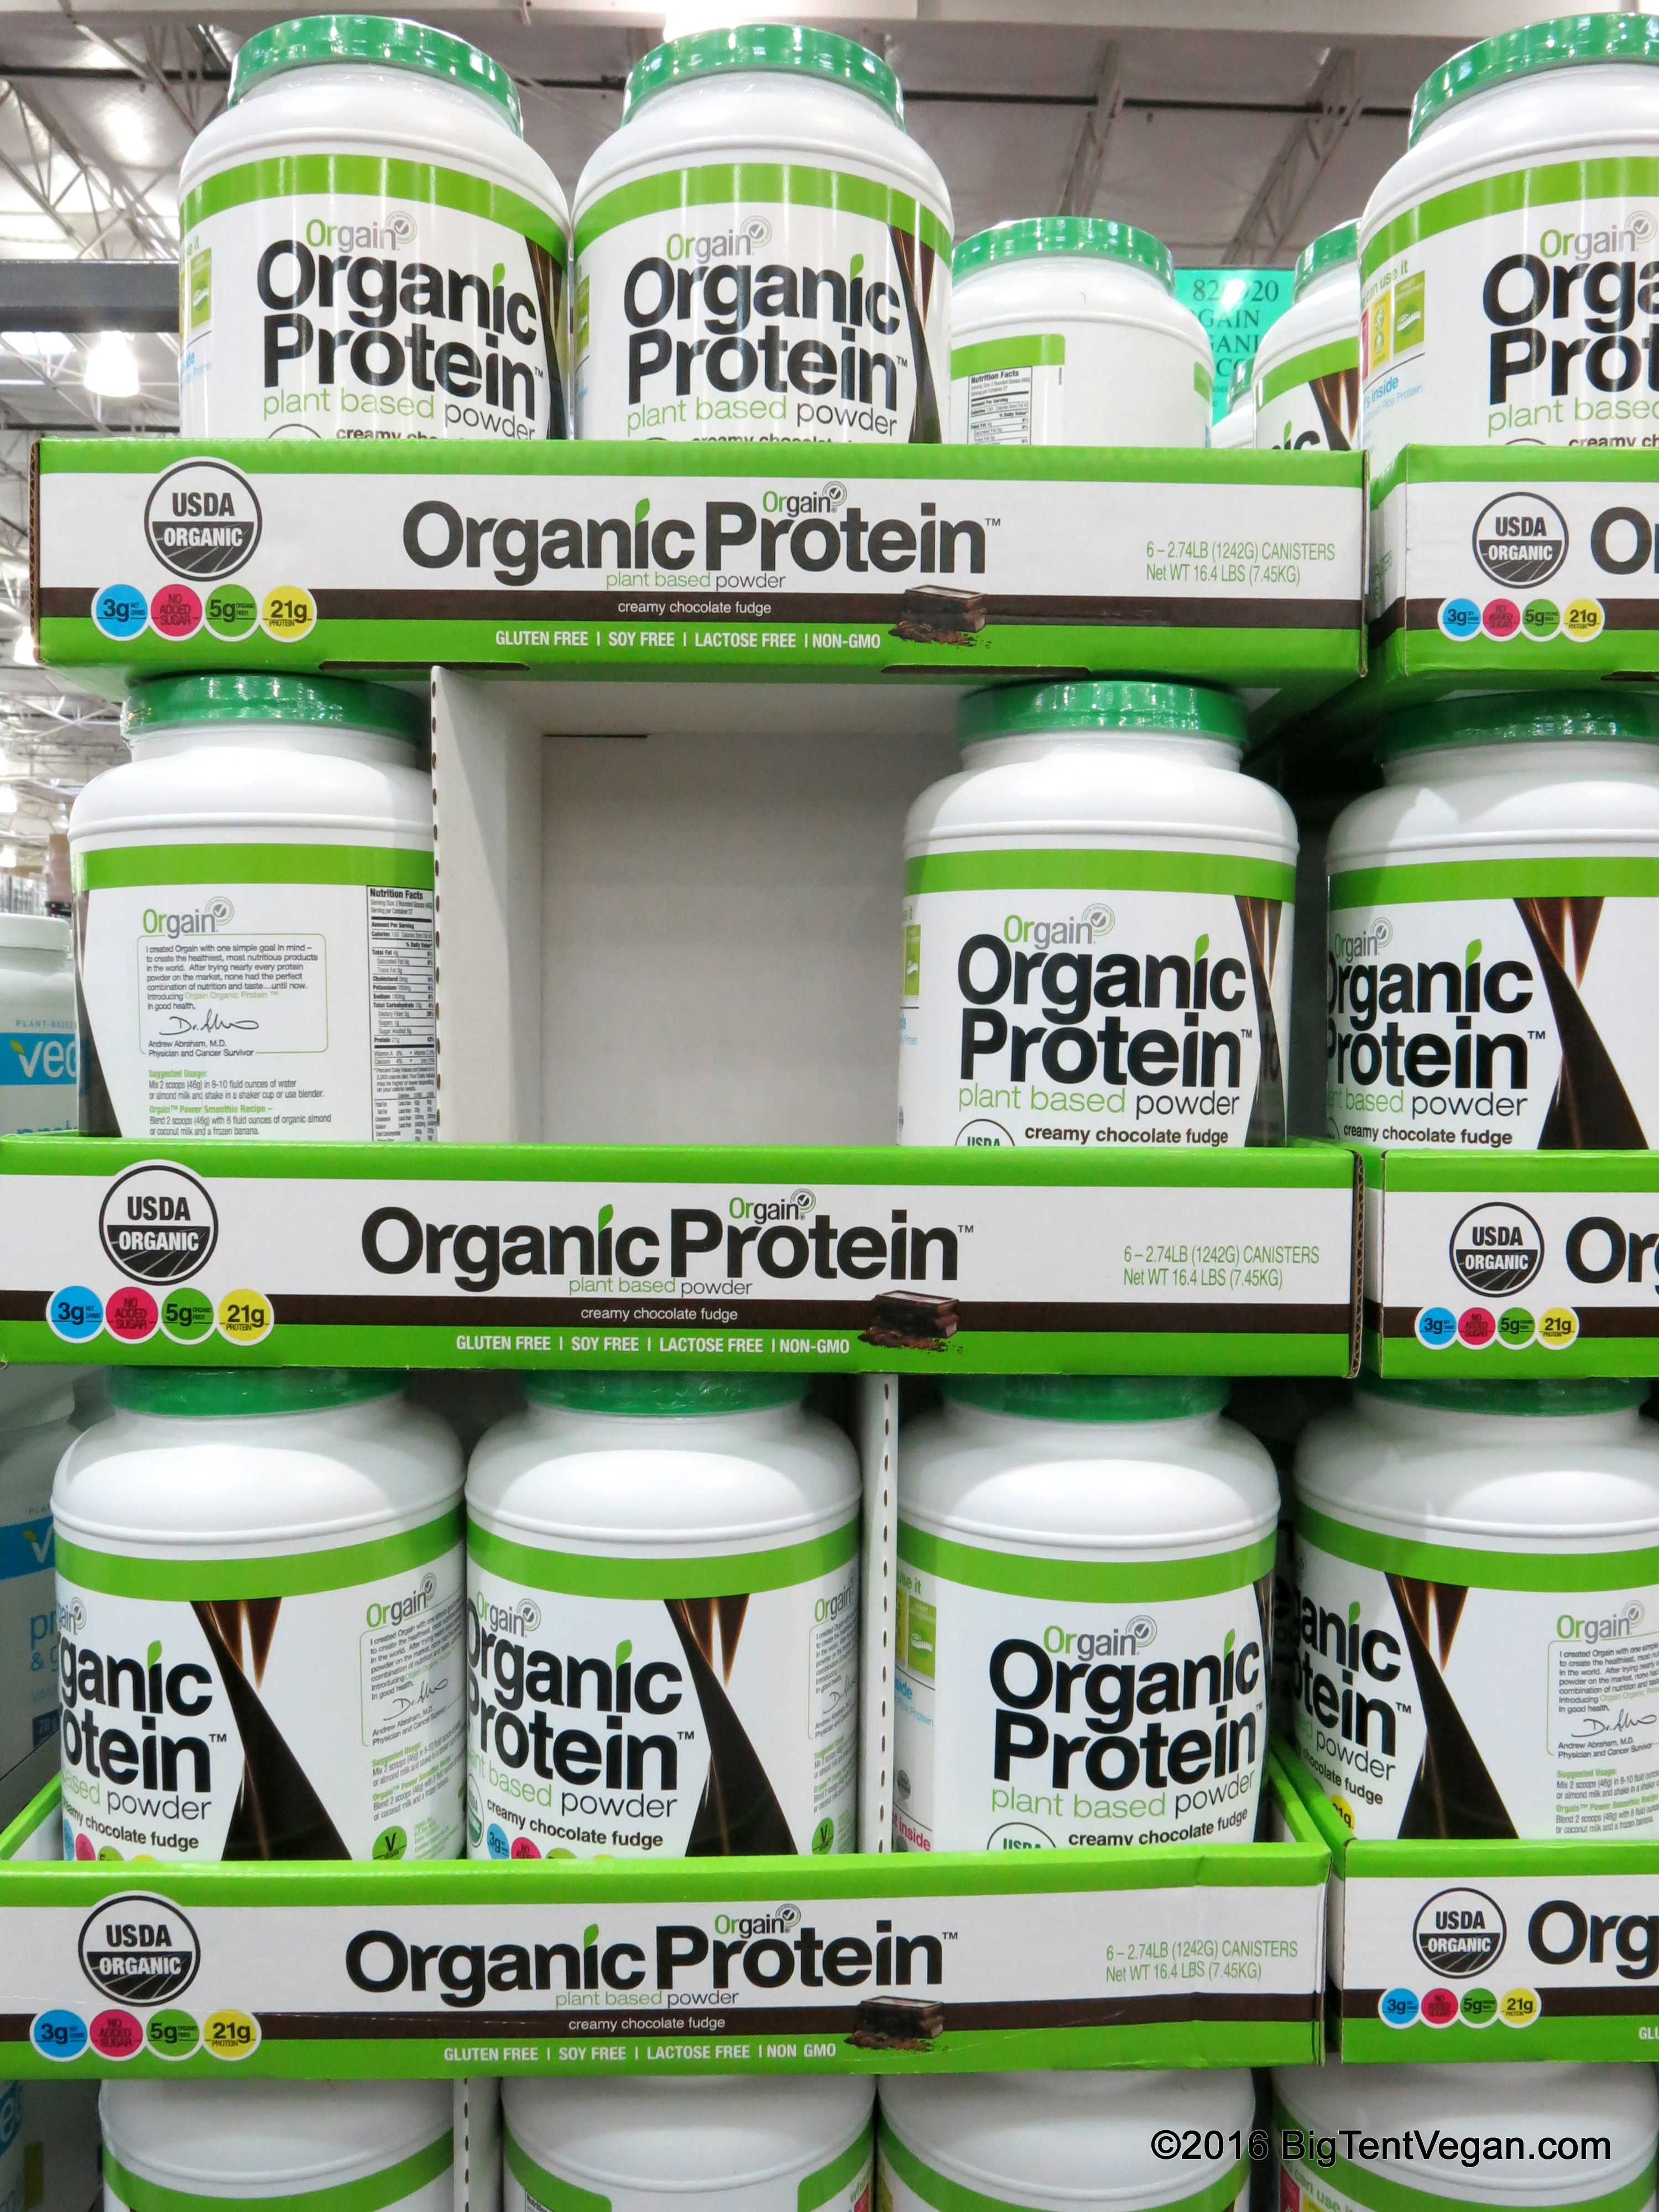 Organic Plant Based Protein Powder By Orgain Vegan Costco Vegan